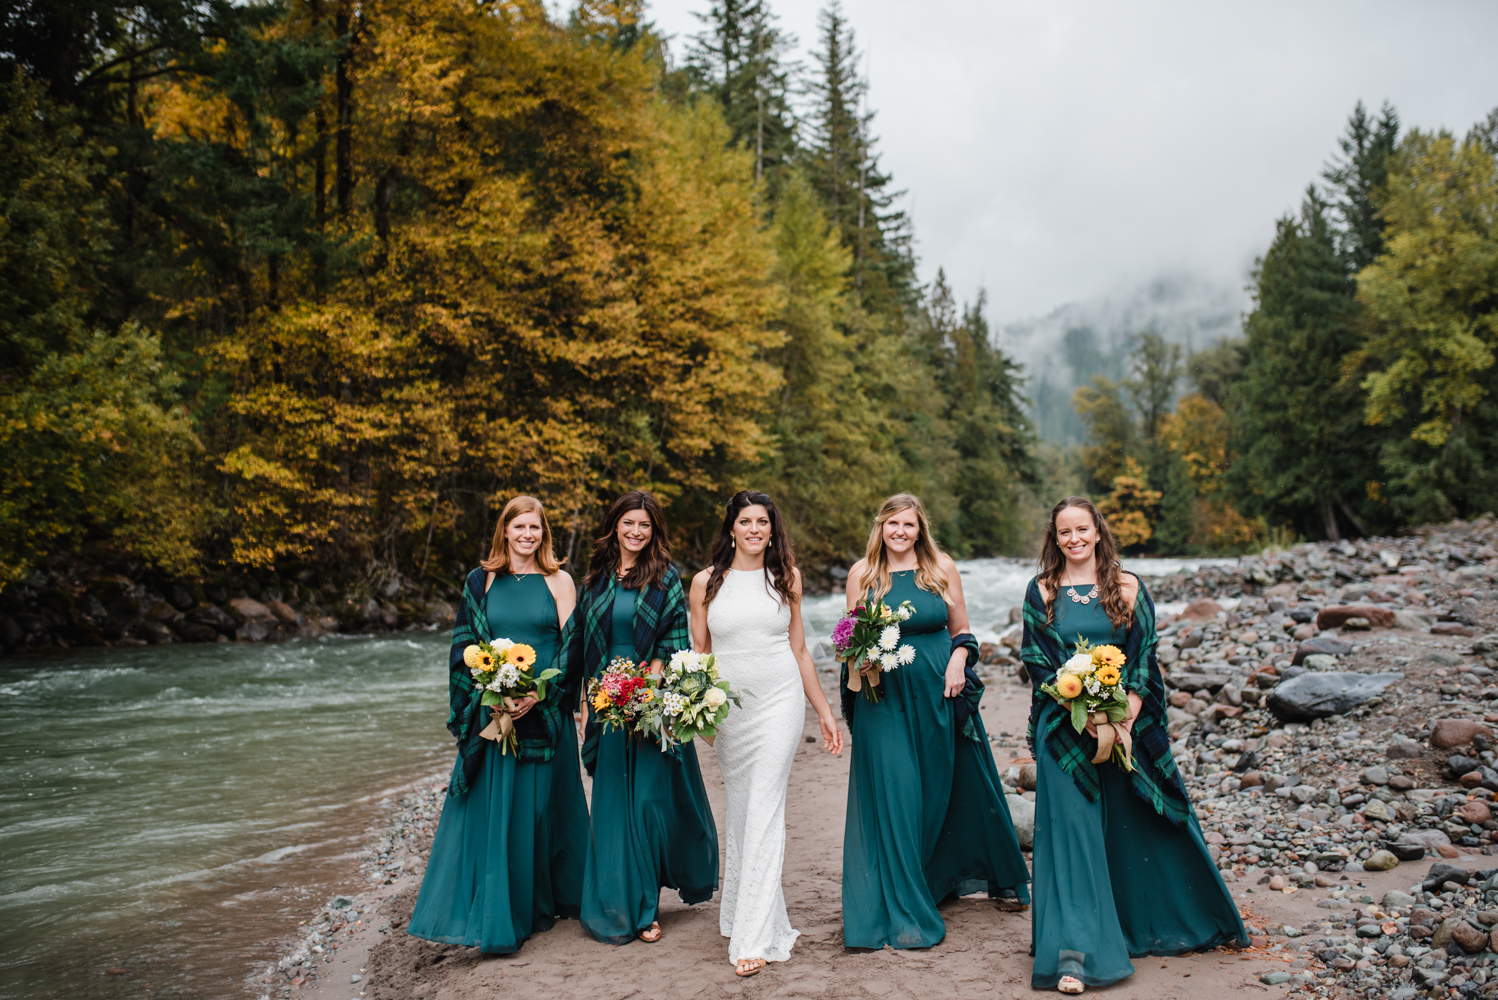 Squamish Wedding Photographer41.jpg